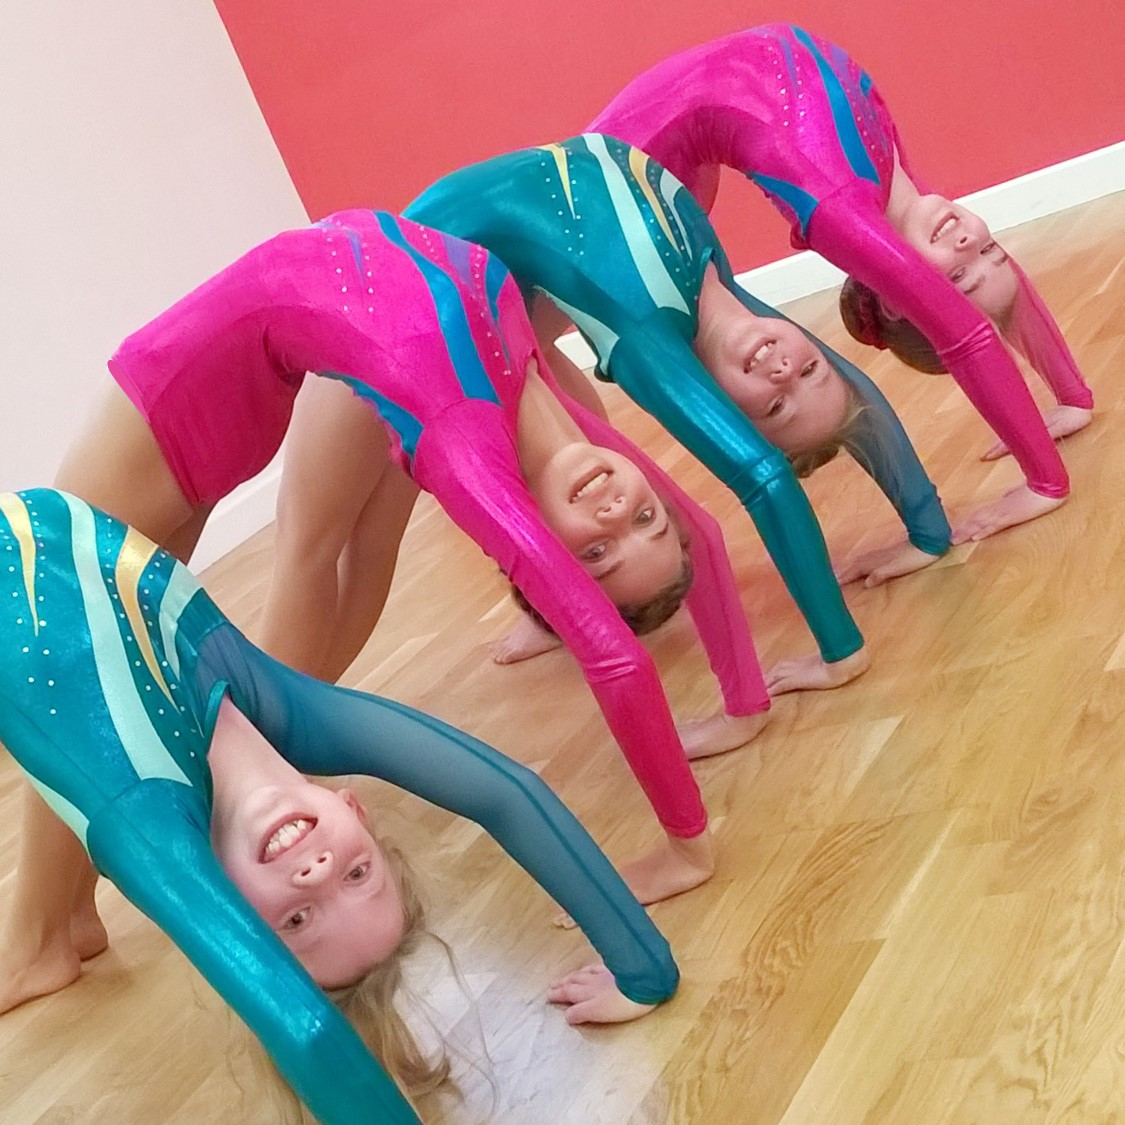 Acrobatic Arts Acro classes for kids at SK Dance Studio, Appley Bridge, Wigan